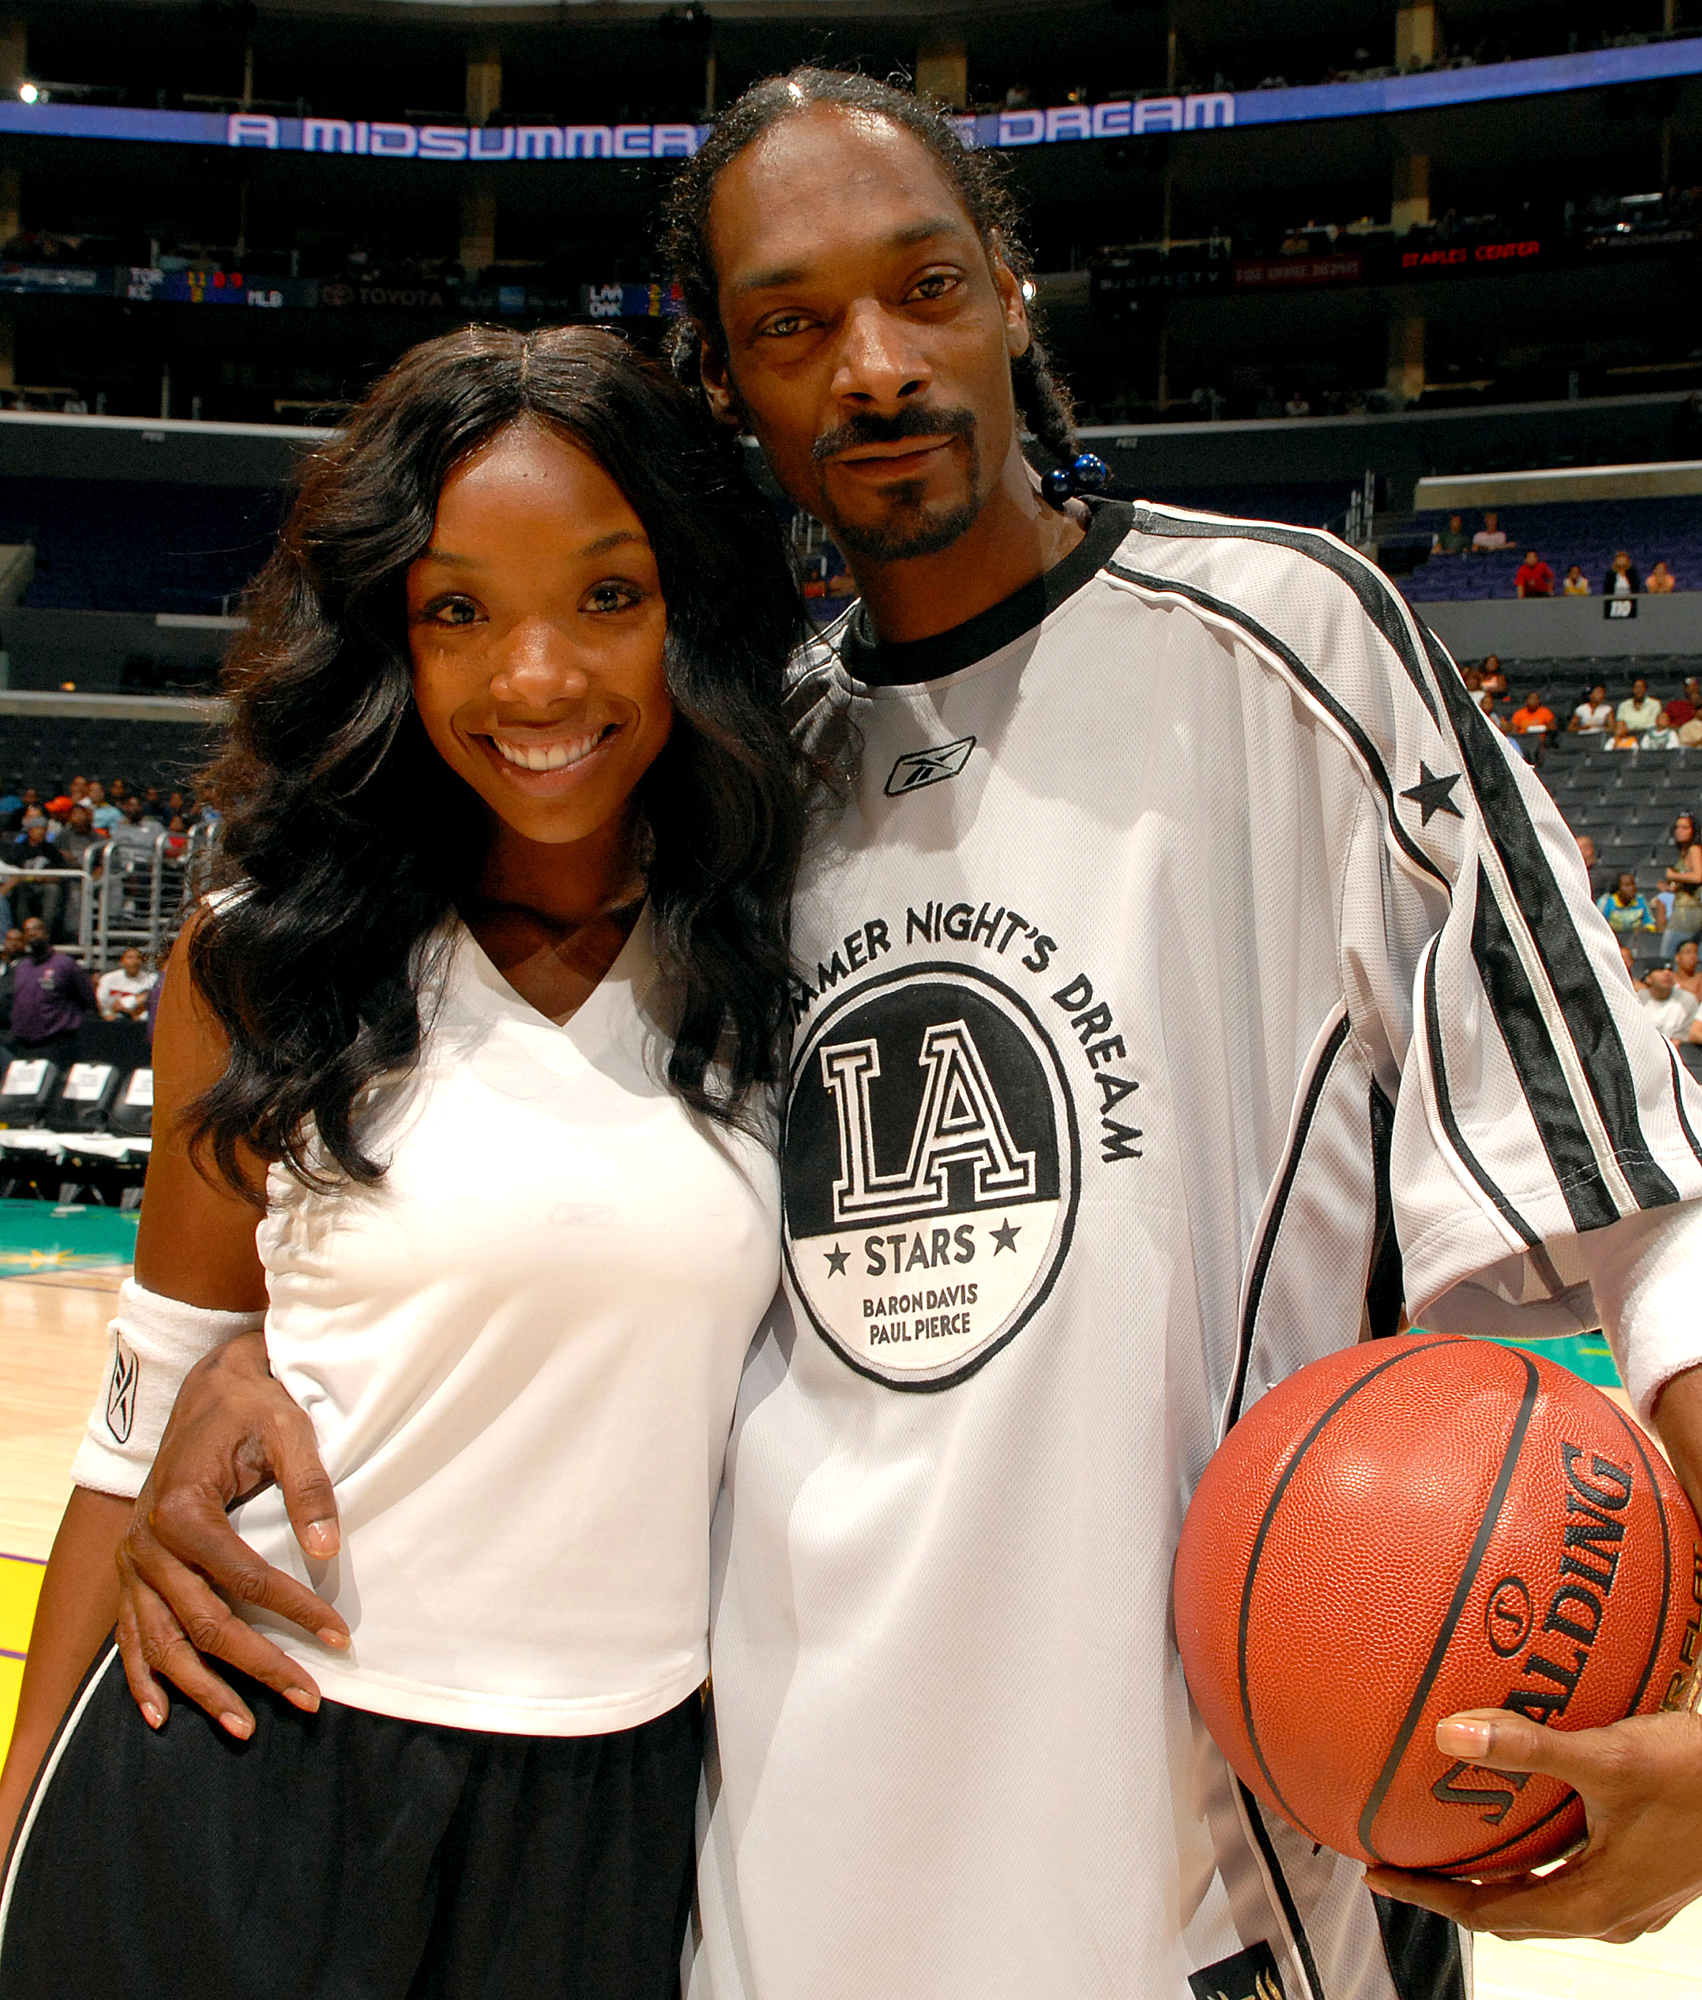 A Midsummer Night's Dream: Celebrity Basketball Game - Pregame - July 9, 2006